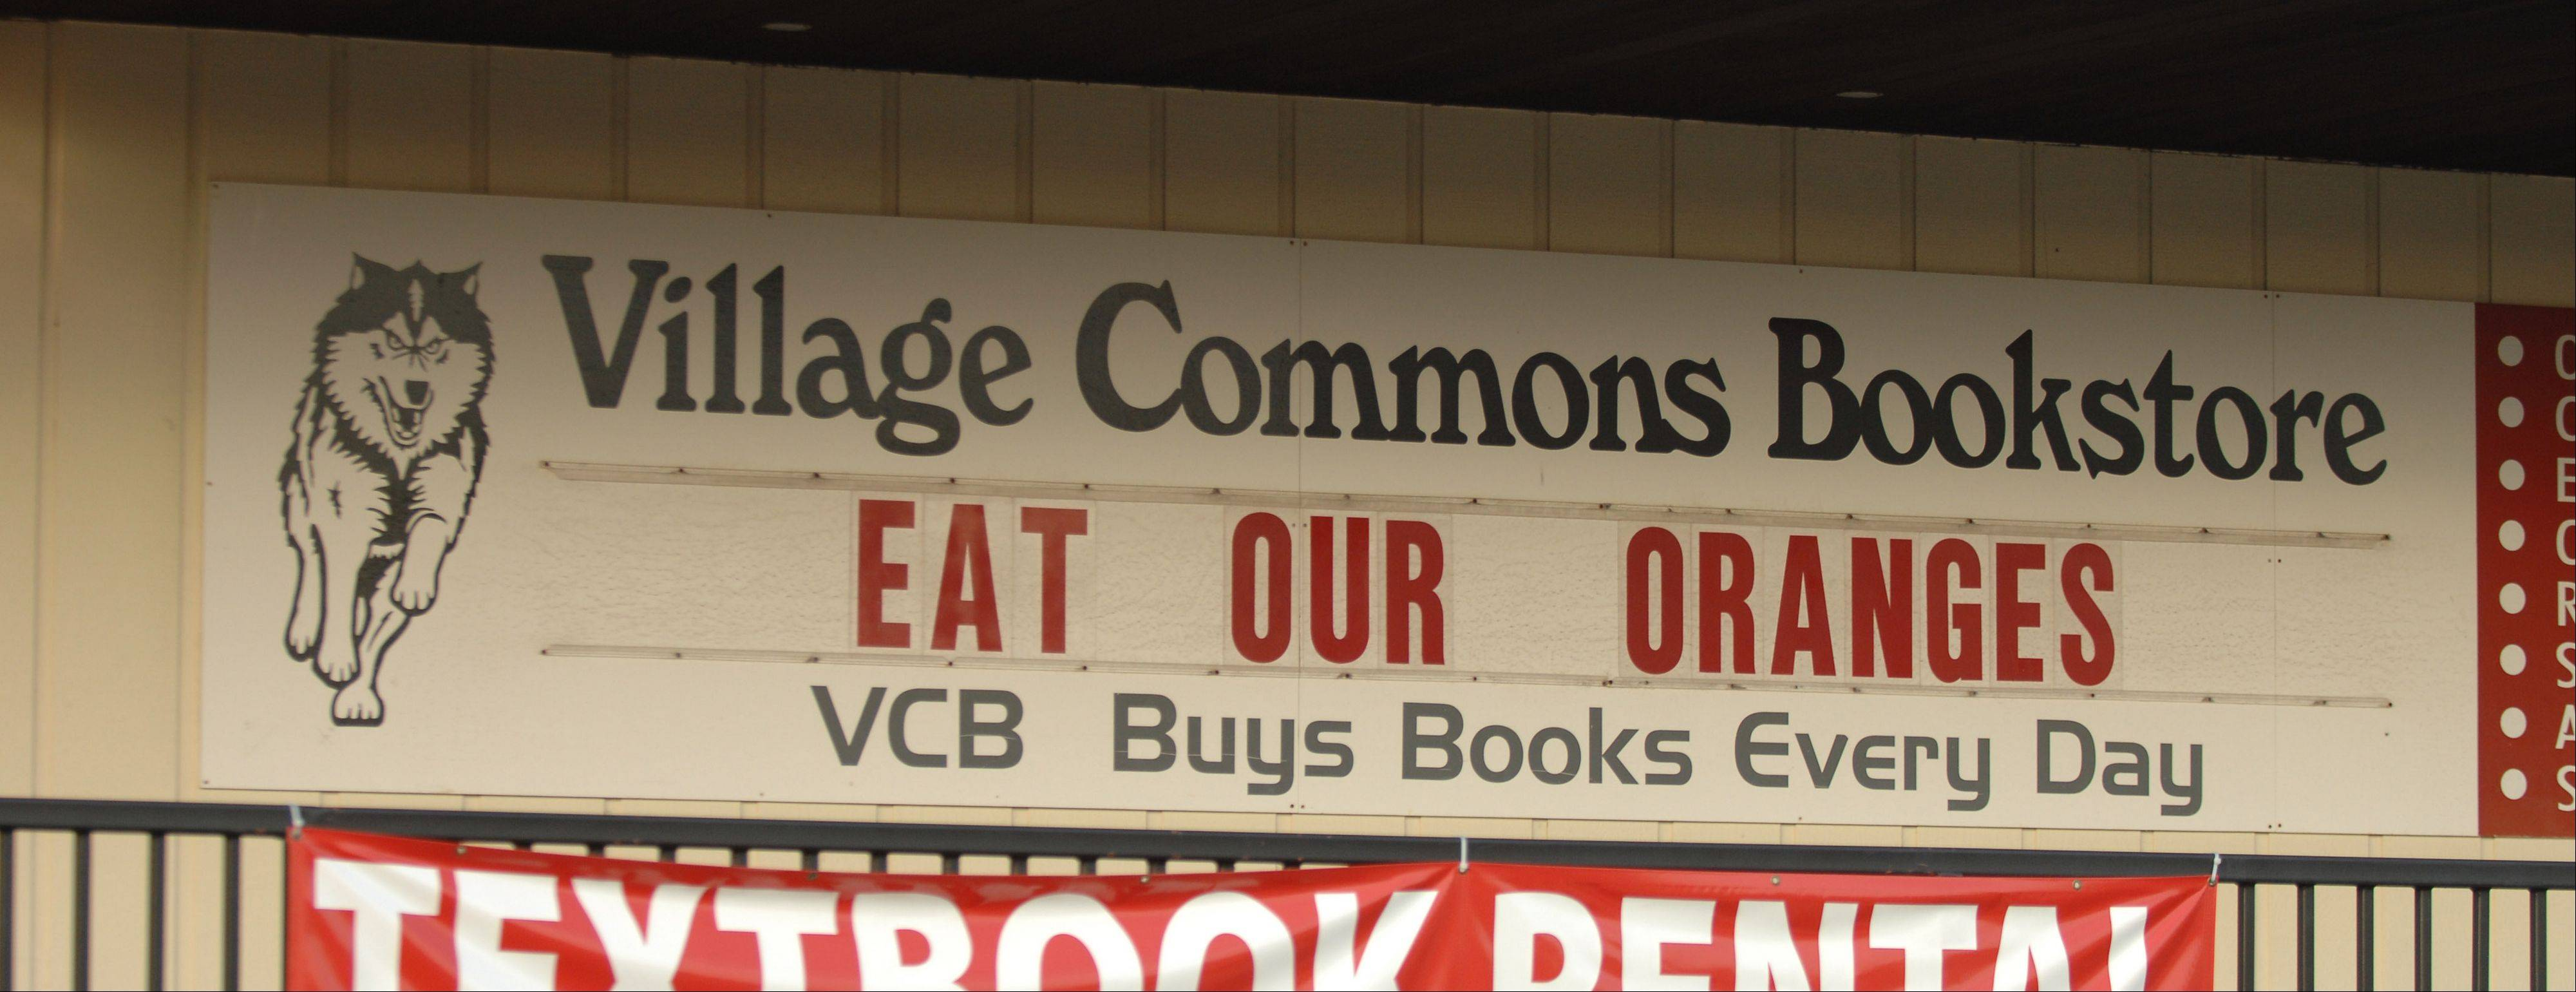 DeKalb's Village Commons Bookstore's sign says it all to critics who question NIU's Orange Bowl selection.